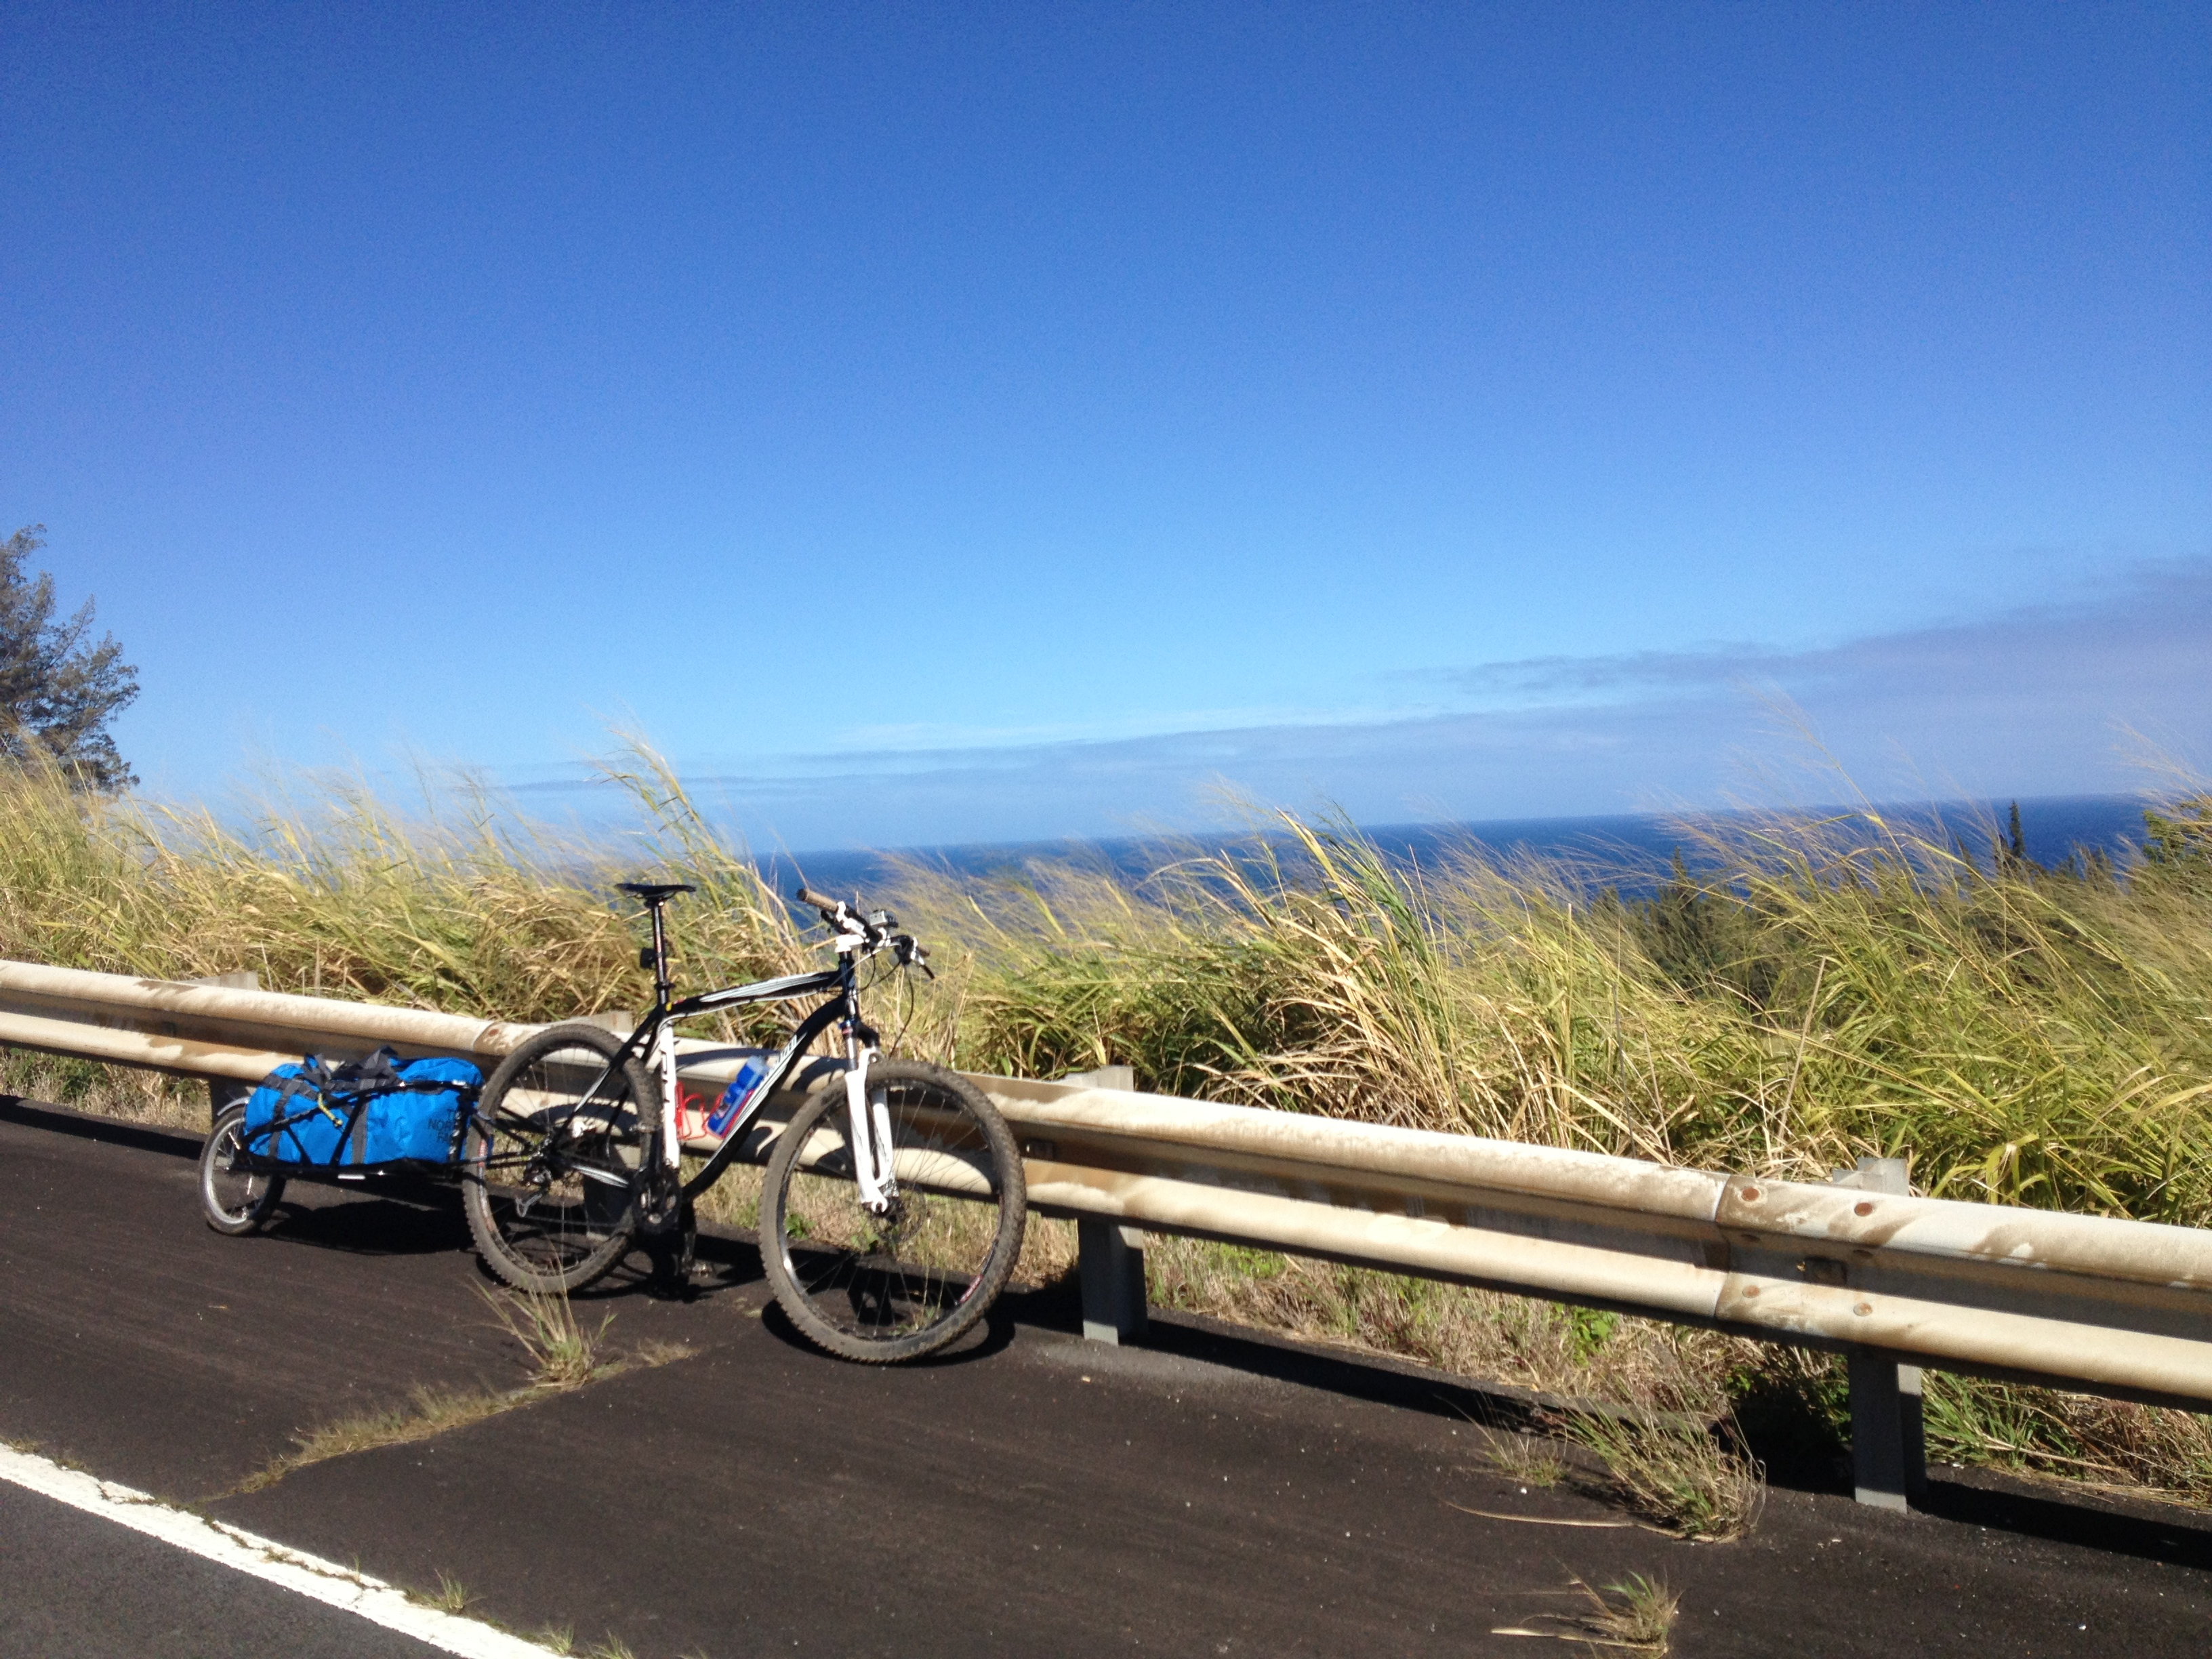 Ocean Road Biking